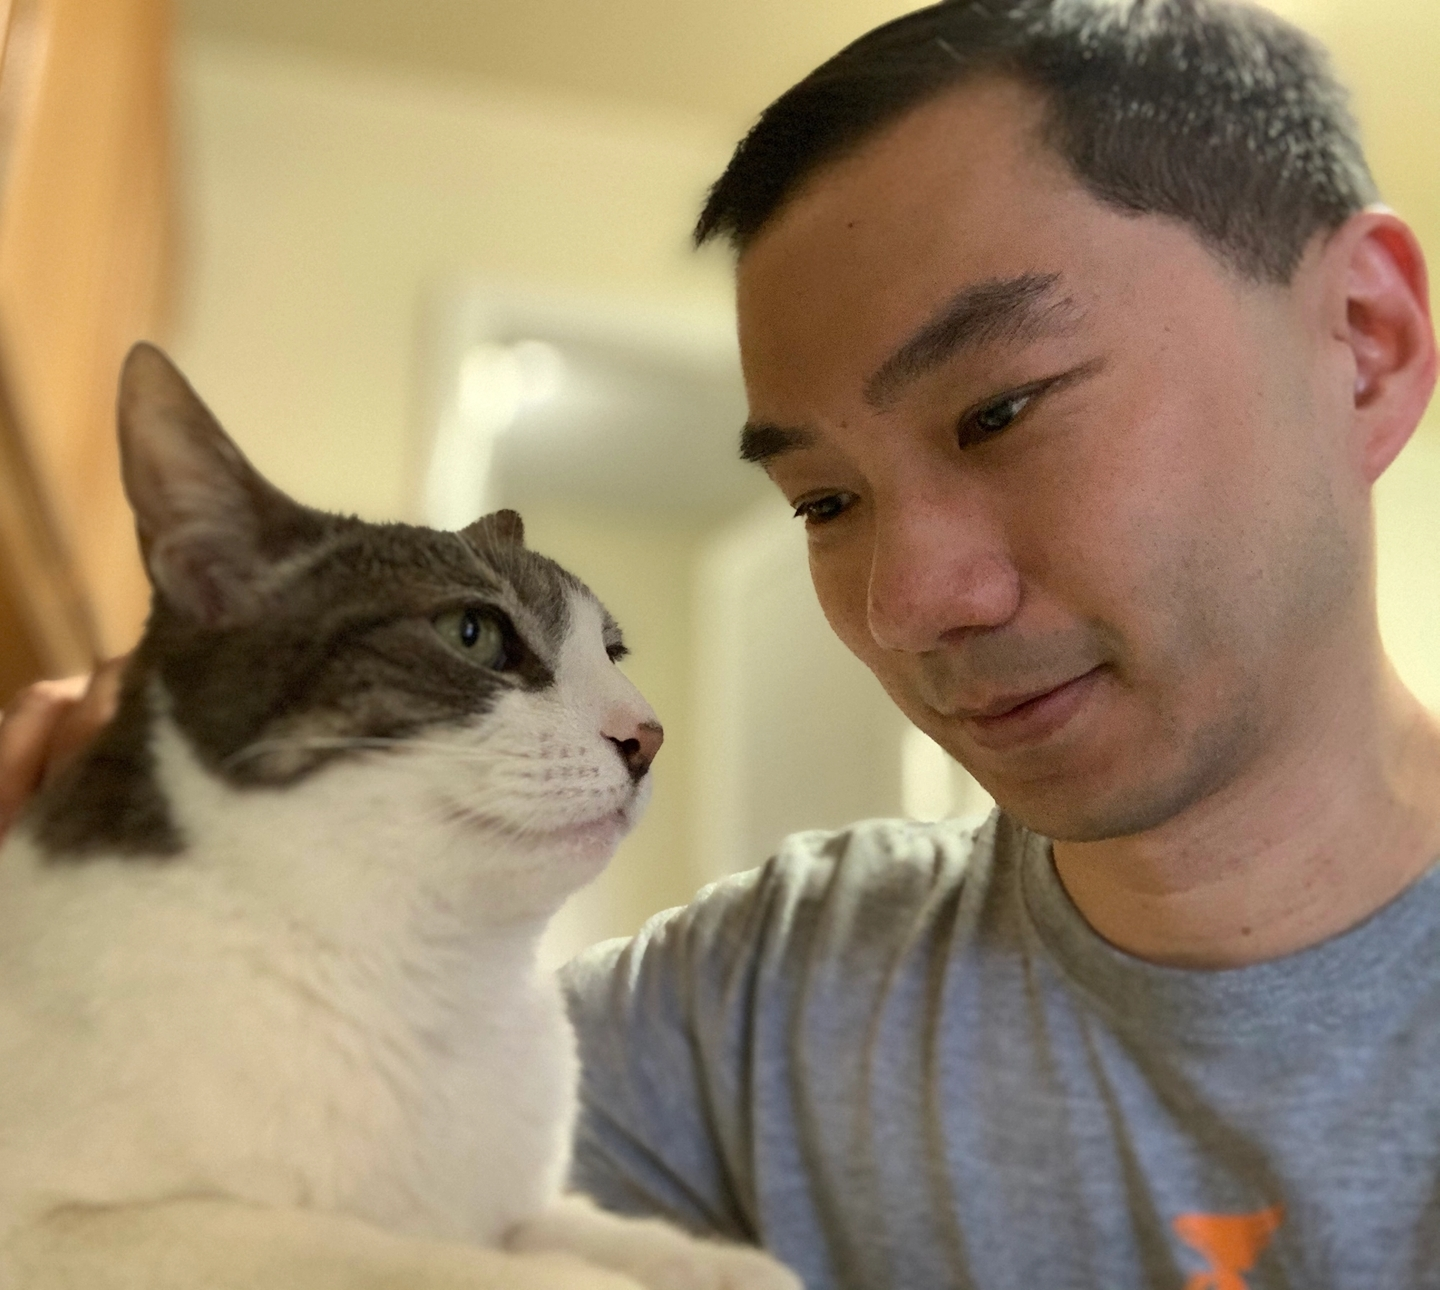 Cat named Pebbles and Cat Person Co-Founder Jimmy